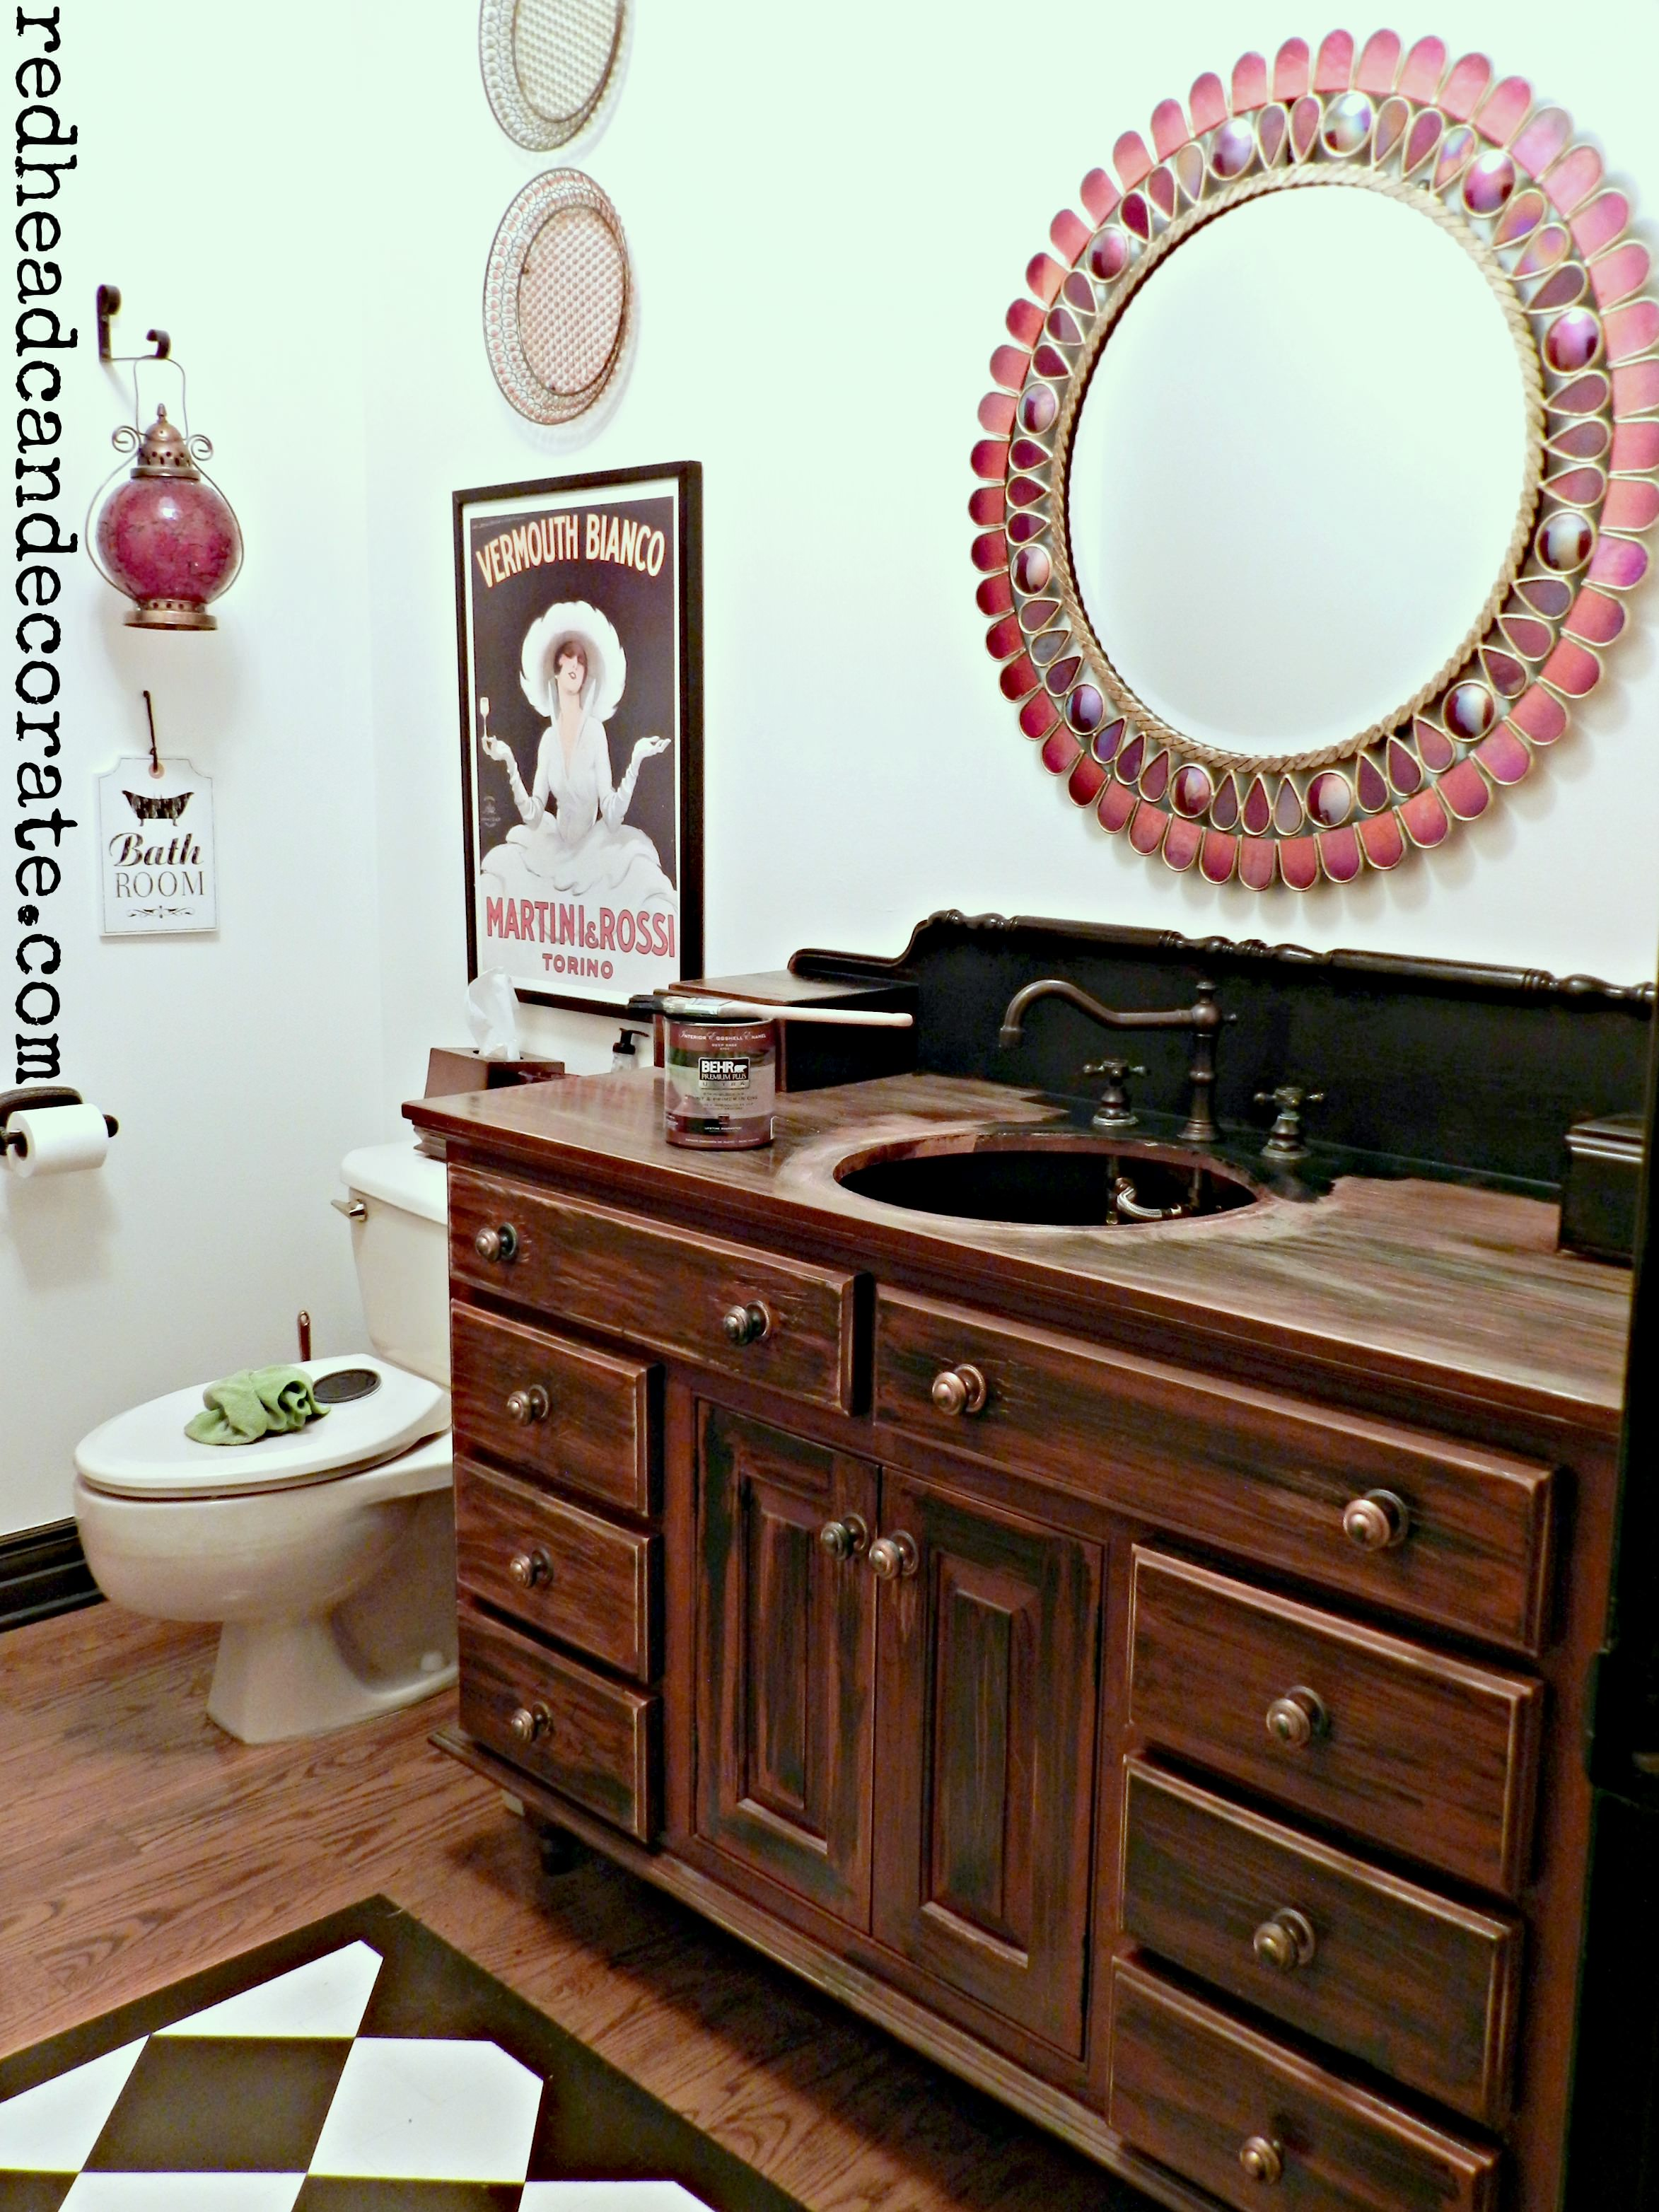 Vanity Light Makeover : 100+ [ Makeover Bathroom Vanity ] Condo Blues The Bathroom Vanity Hunt Begins Maybe,How To ...